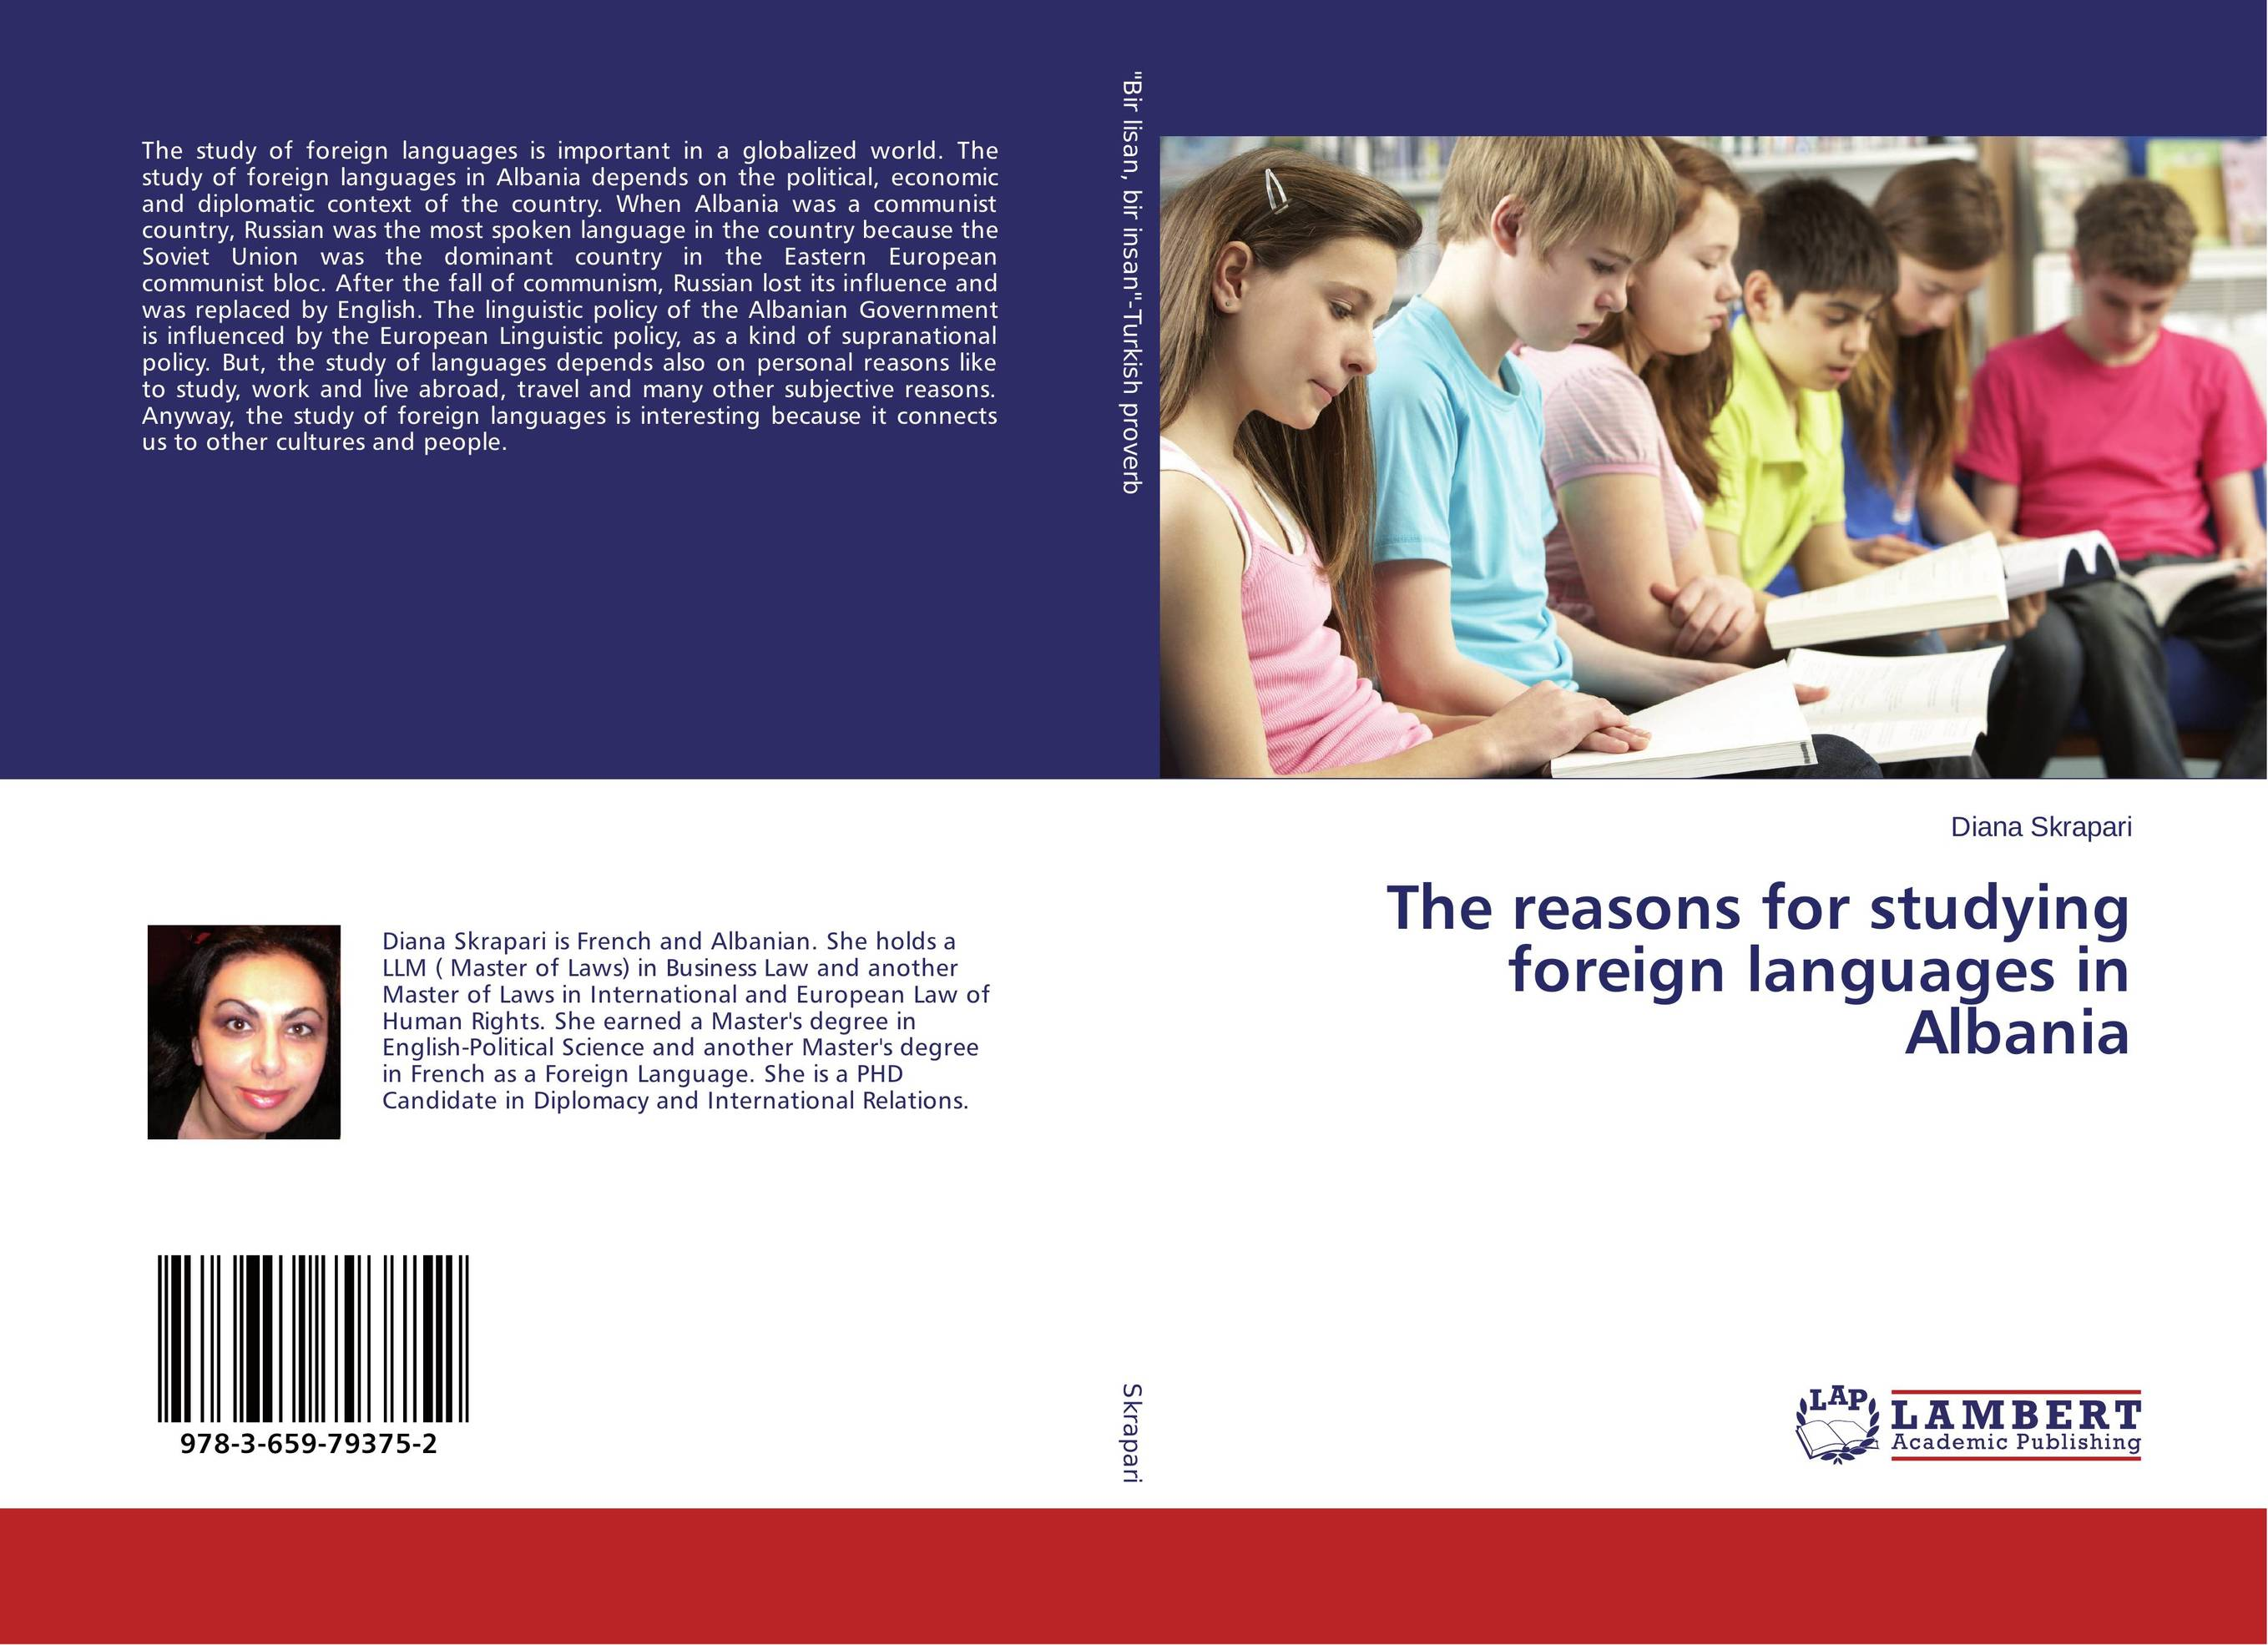 The reasons for studying foreign languages in Albania introduction to the languages of the world